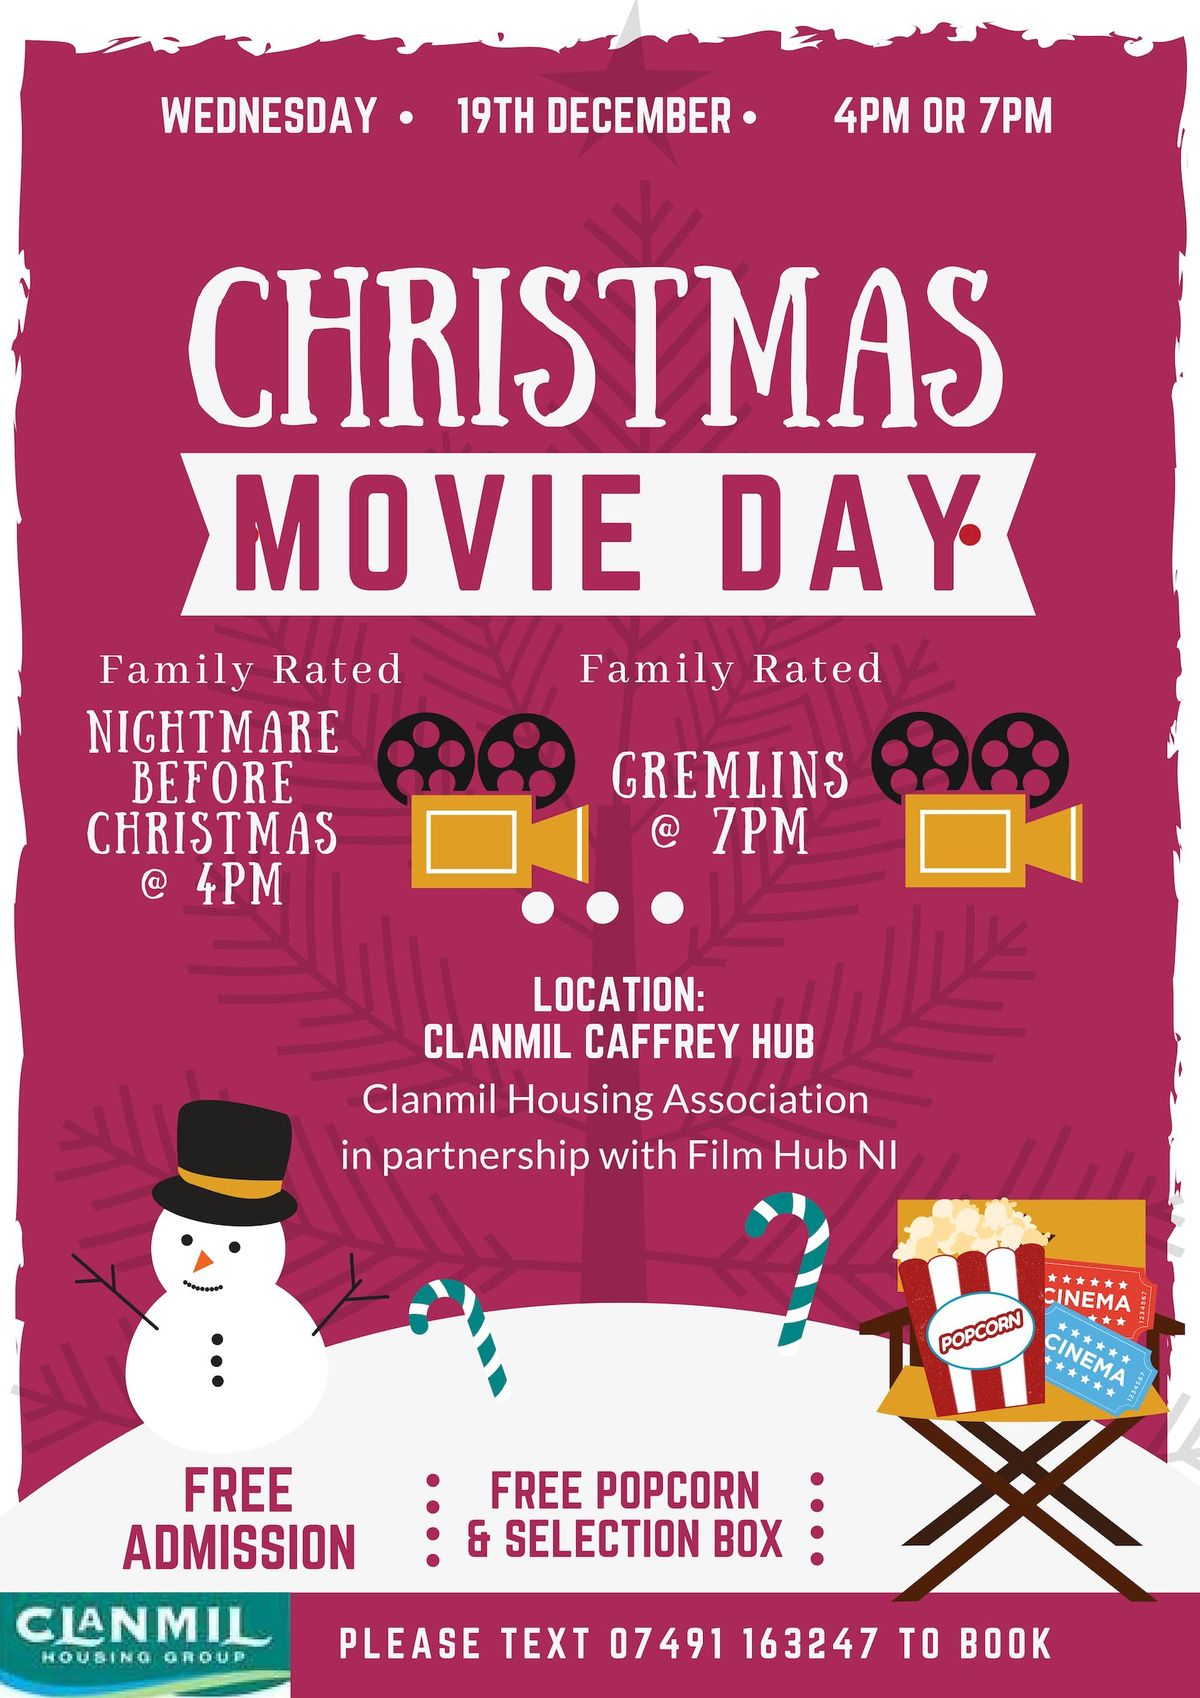 Copy of Clanmil present Christmas at the Movies - GREMLINS 7PM